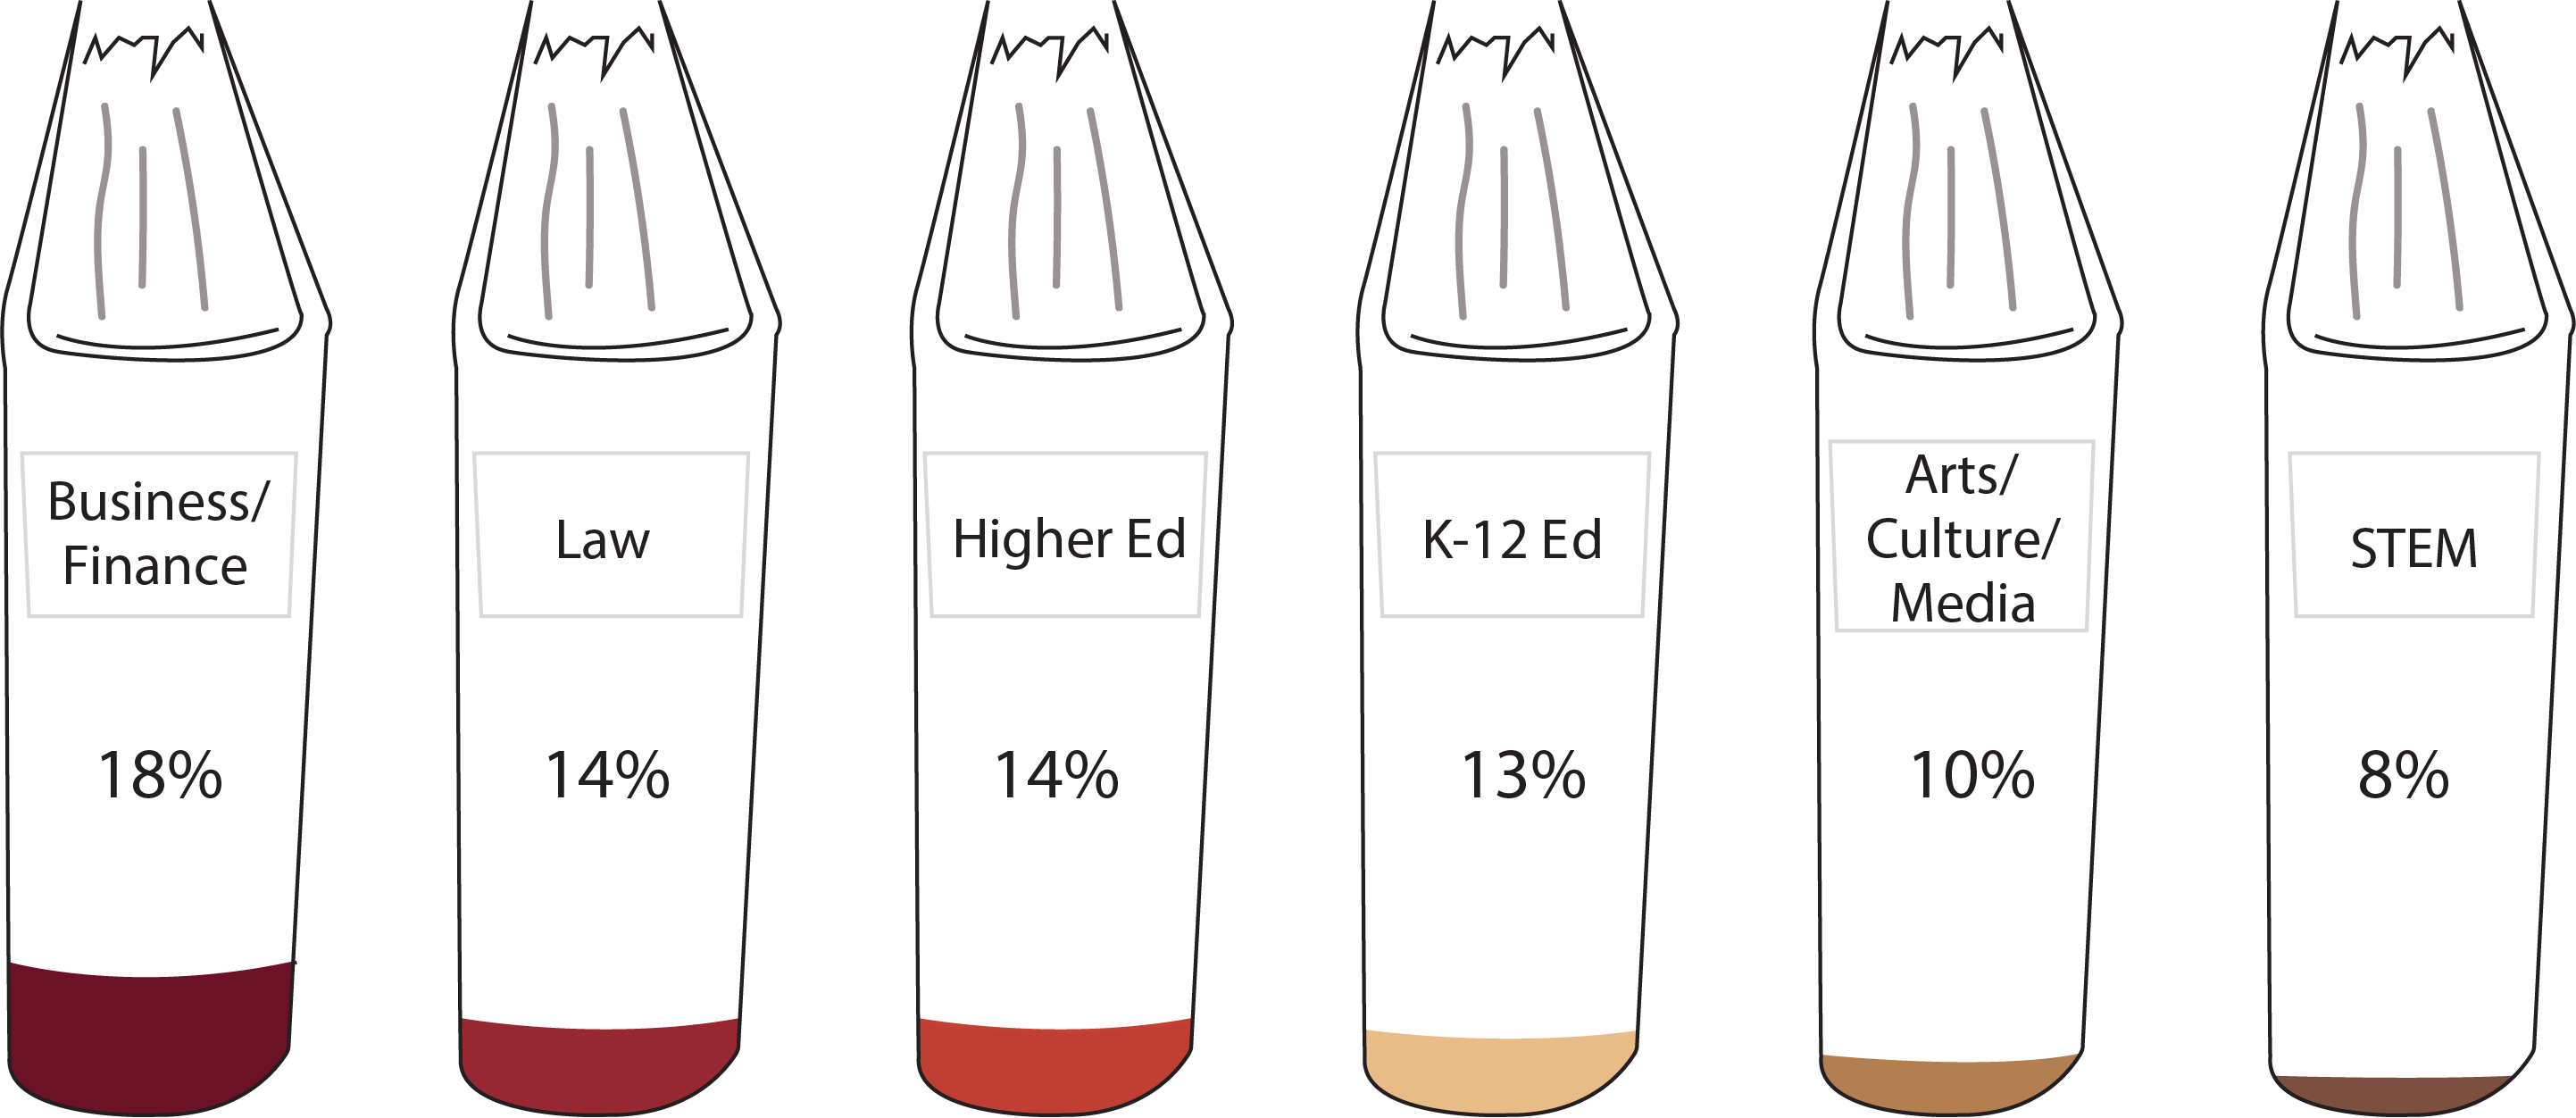 Bar graph made of books showing the following data: Business/Finance: 18%; Law: 14%; Higher Ed: 14%; K-12 Ed: 13%; Arts/Culture/Media: 10%; STEM: 8%